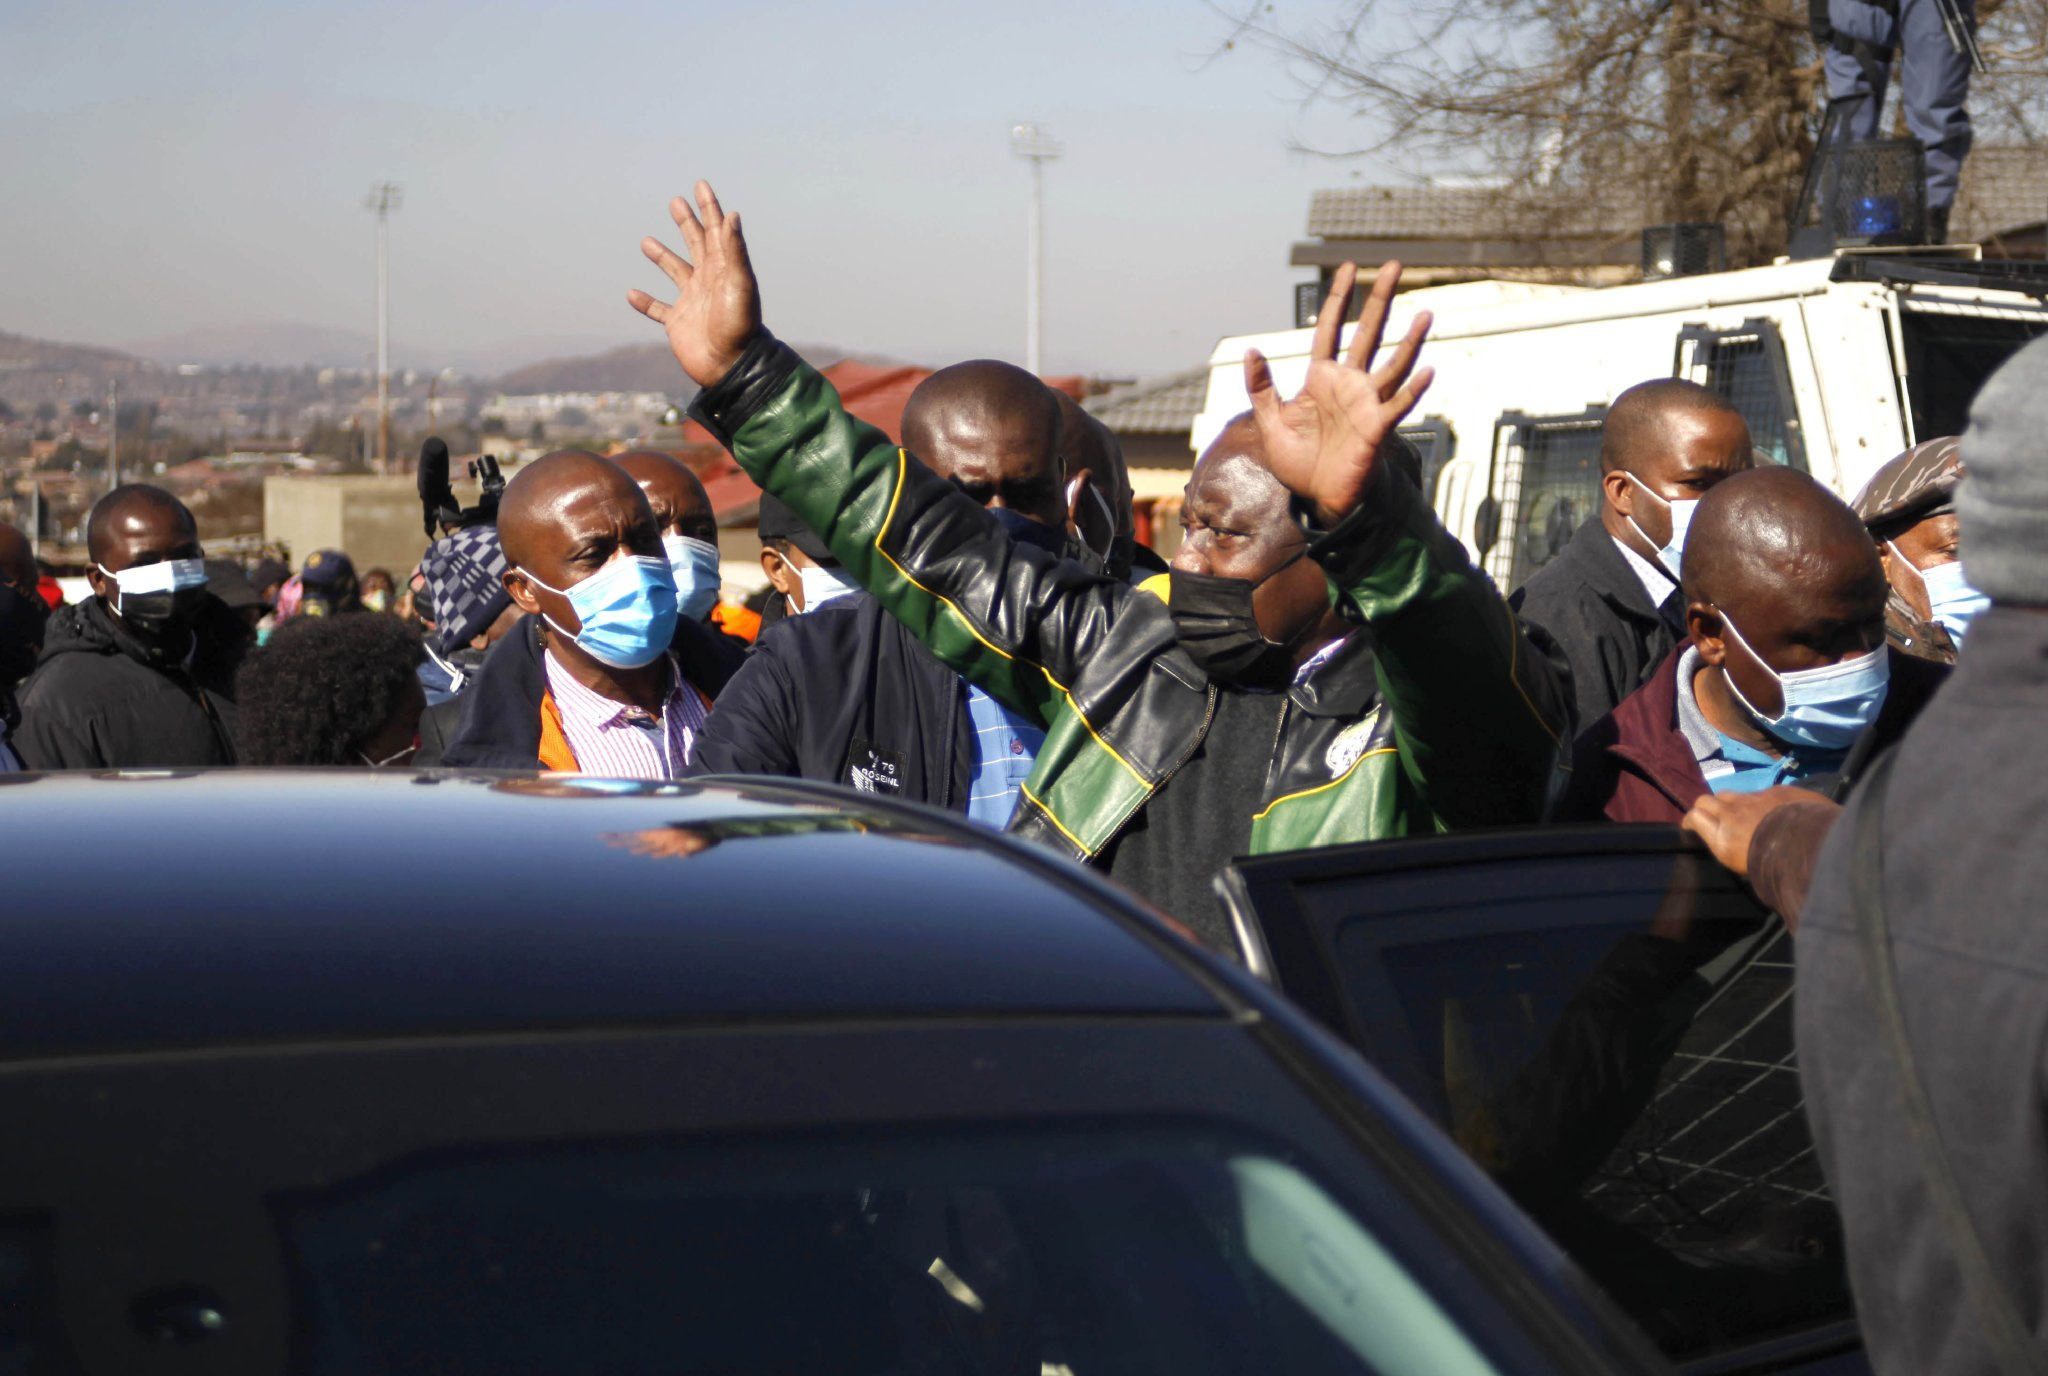 South Africa's leader vows to restore order, catch plotters